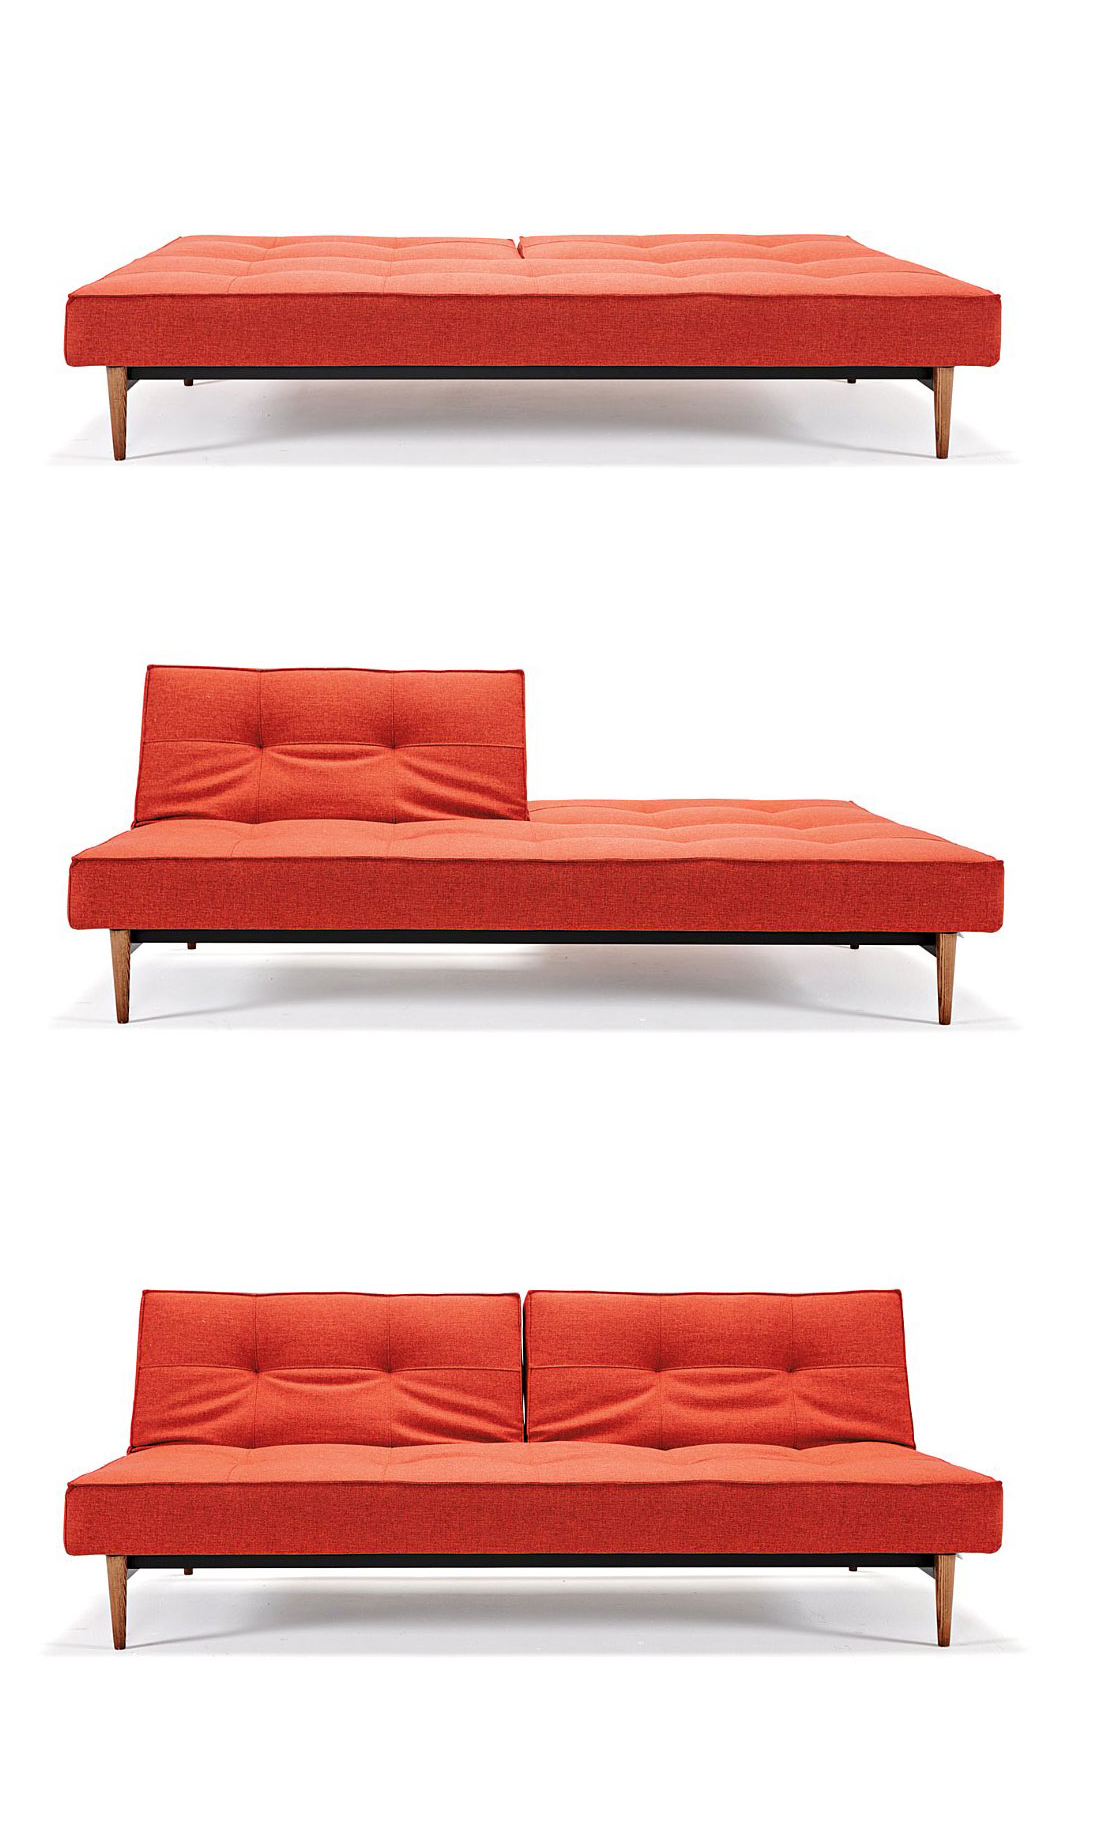 Multifunctional and completely modern, the Divi Sofa is a study in playfulness and simple, modern design. Convertible to a full-sized bed, the sofa has a 7-inch thick mattress, powder-coated metal frame, and walnut wood legs. Perfect for living rooms and guest rooms that need a hard-wearing, sophisticated, and versatile piece of furniture that's good for entertaining and for sleeping.